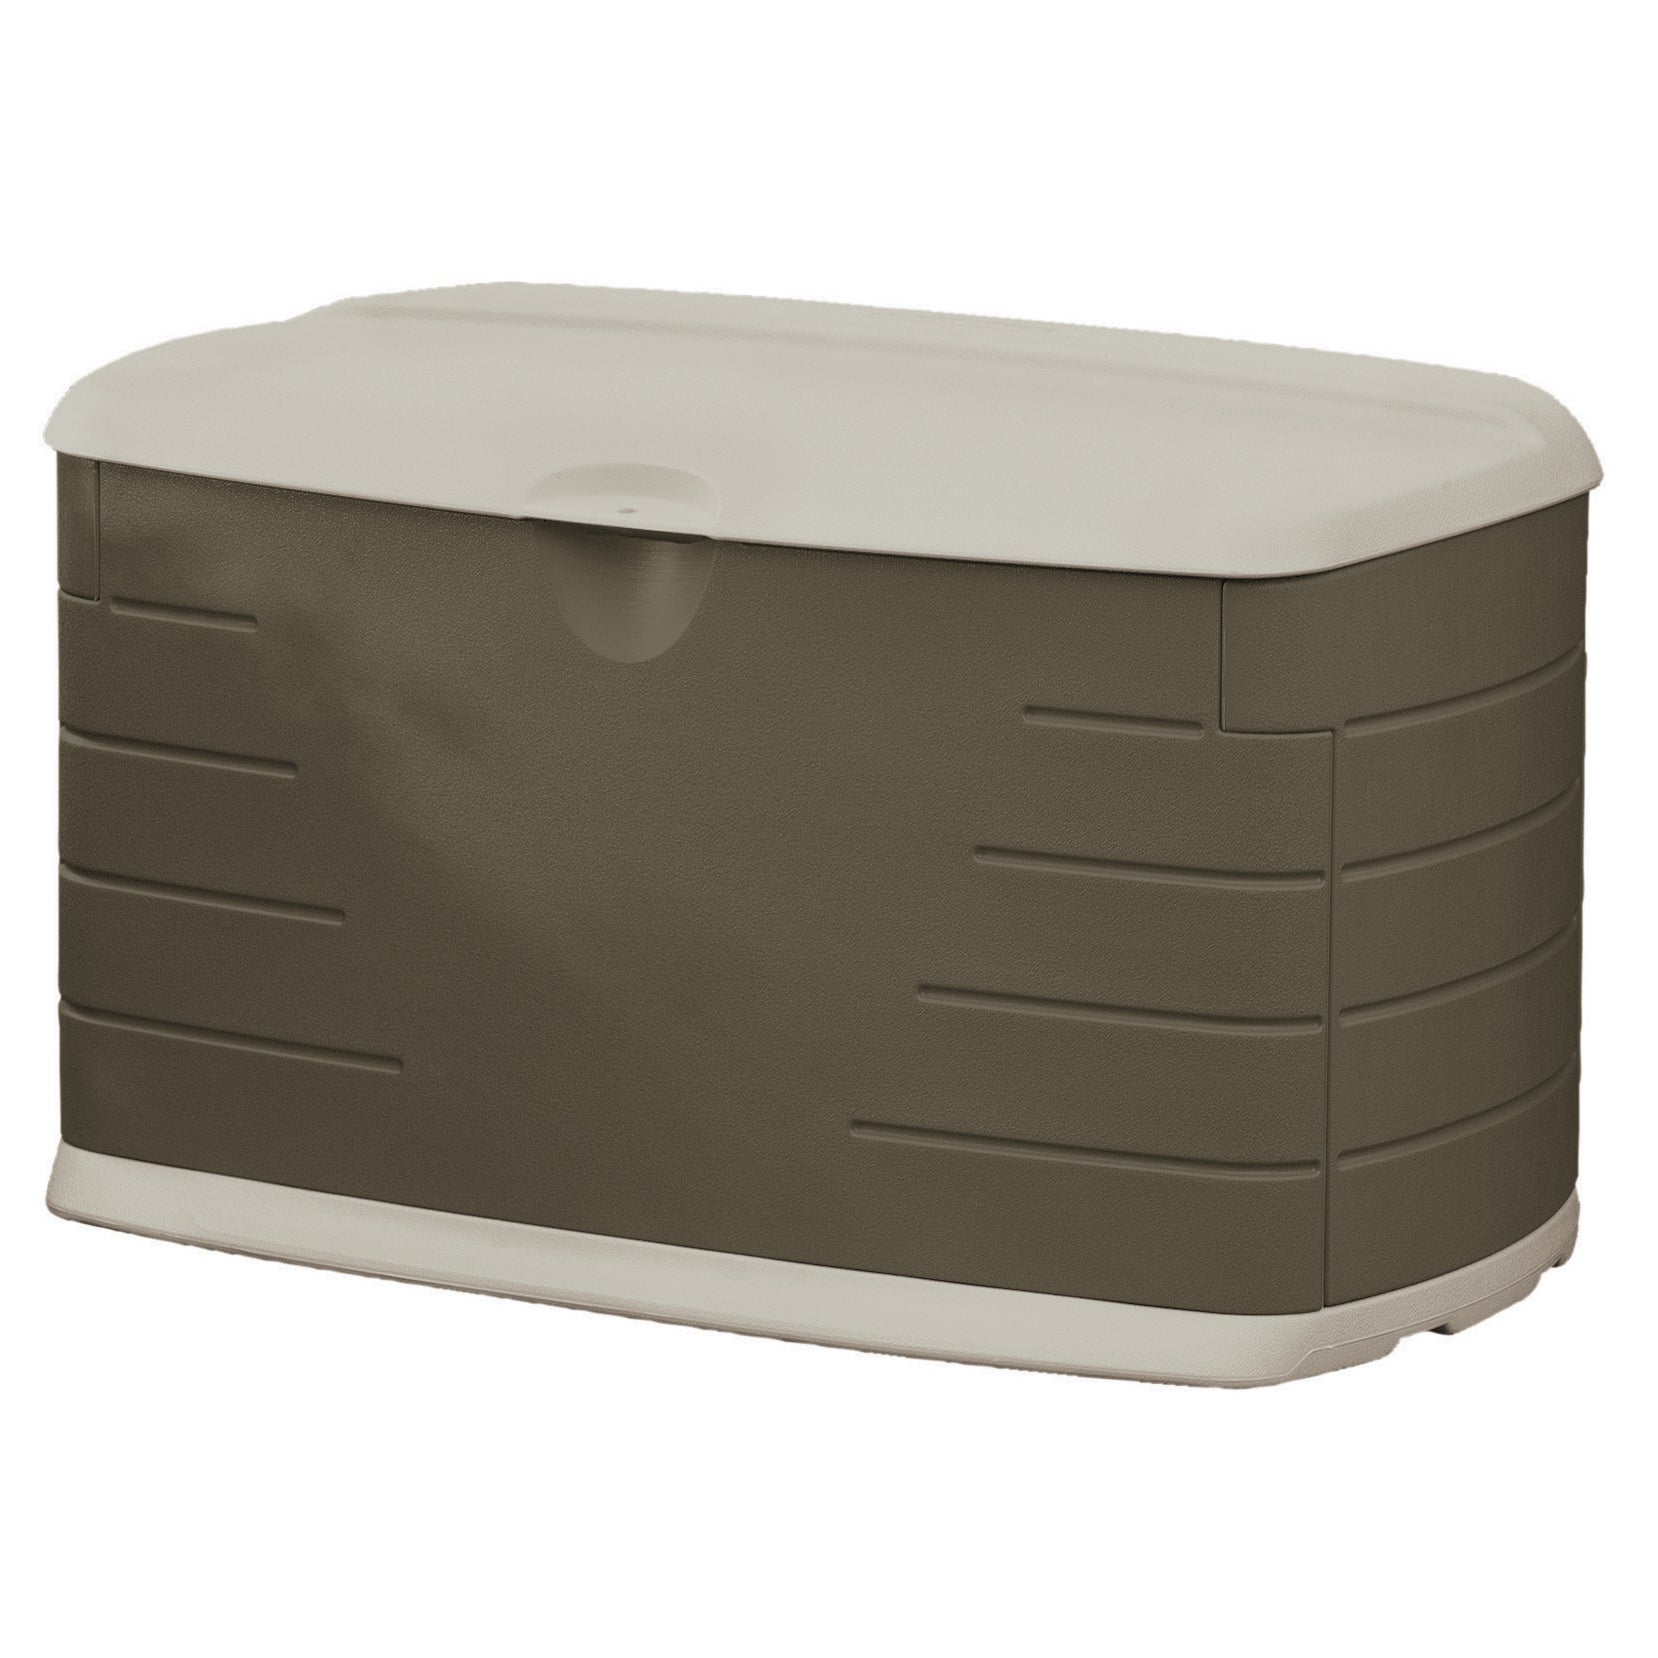 Rubbermaid 75-Gallon Outdoor Storage Box/Bench (12 inches...